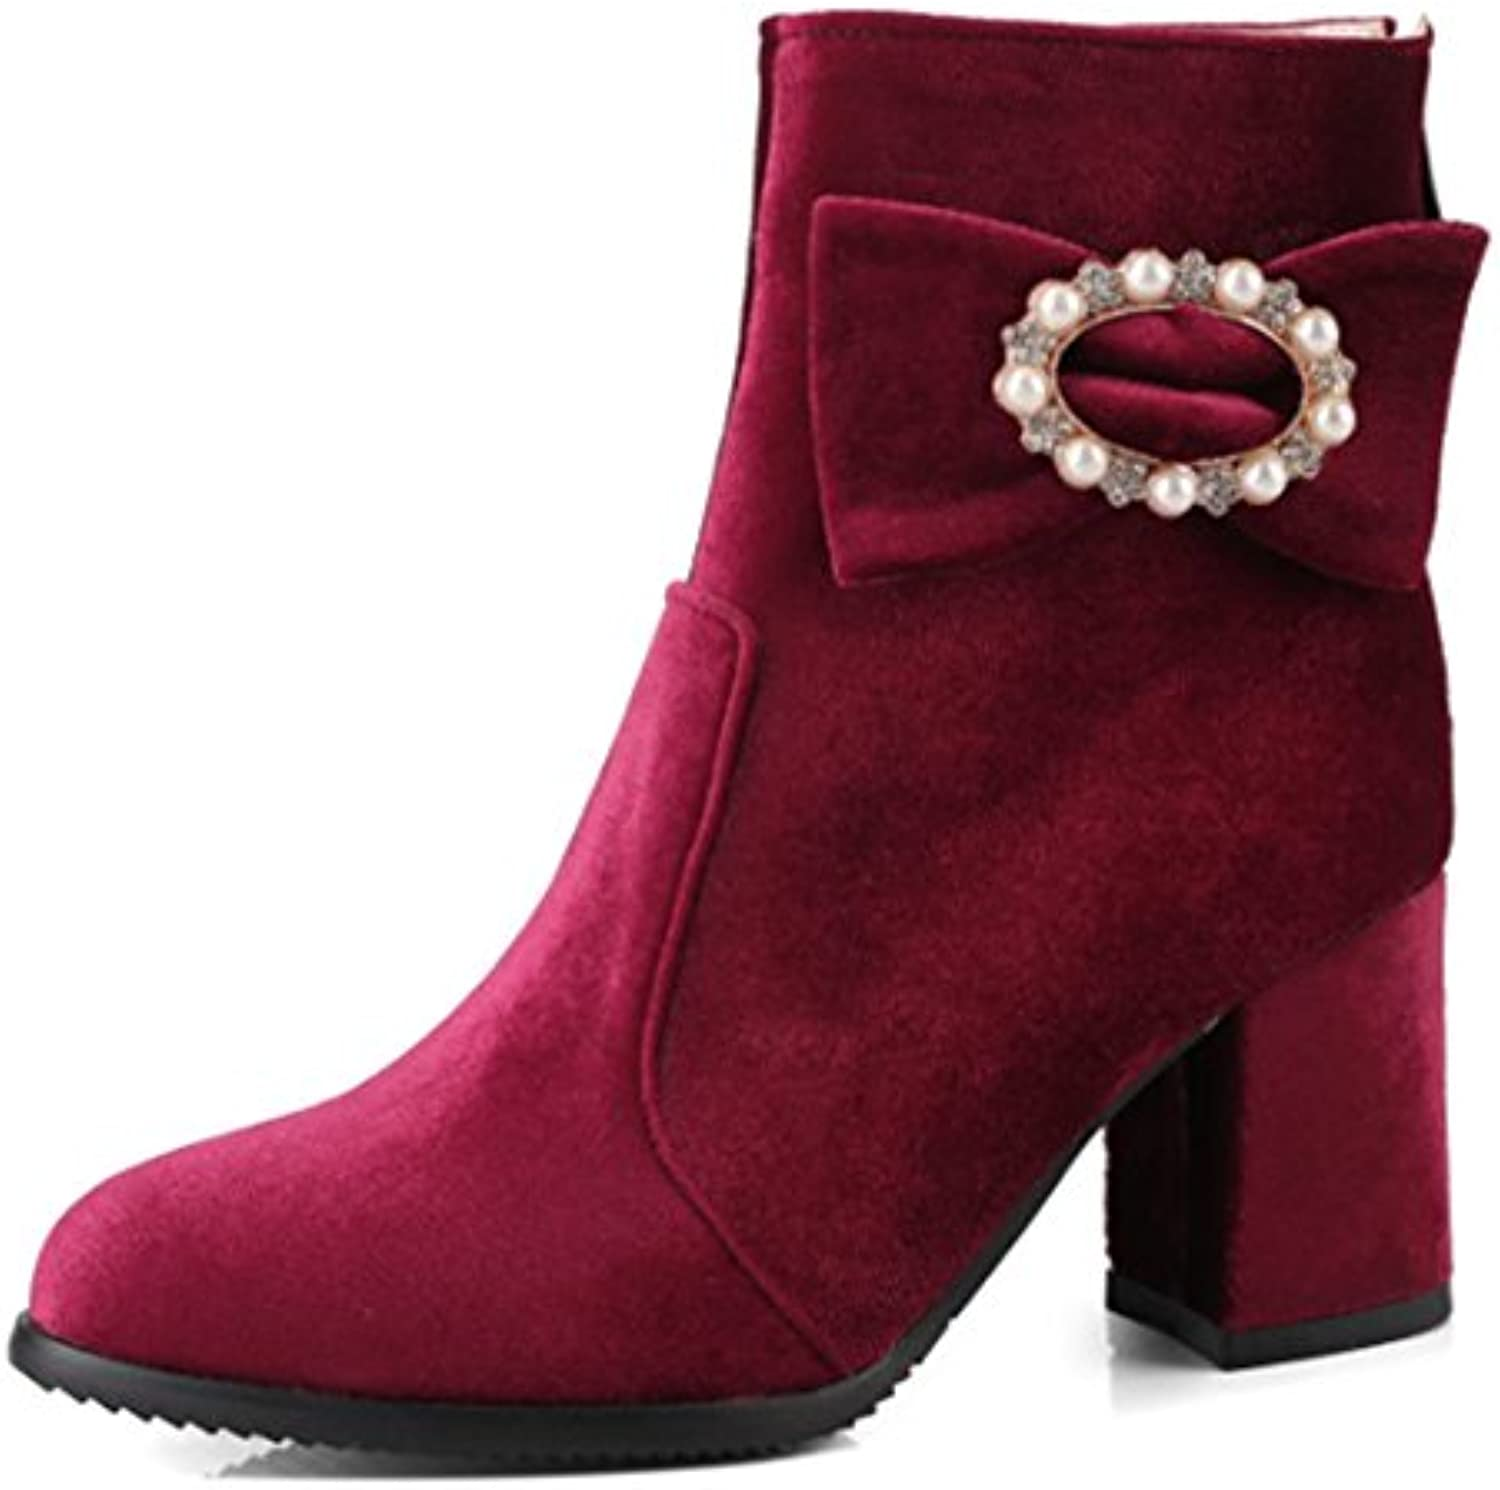 240fbca0ccd Easemax Easemax Easemax Women s Chic Elegant Mid Chunky Heel Bows Beaded  Zip Up Faux Suede Pointed